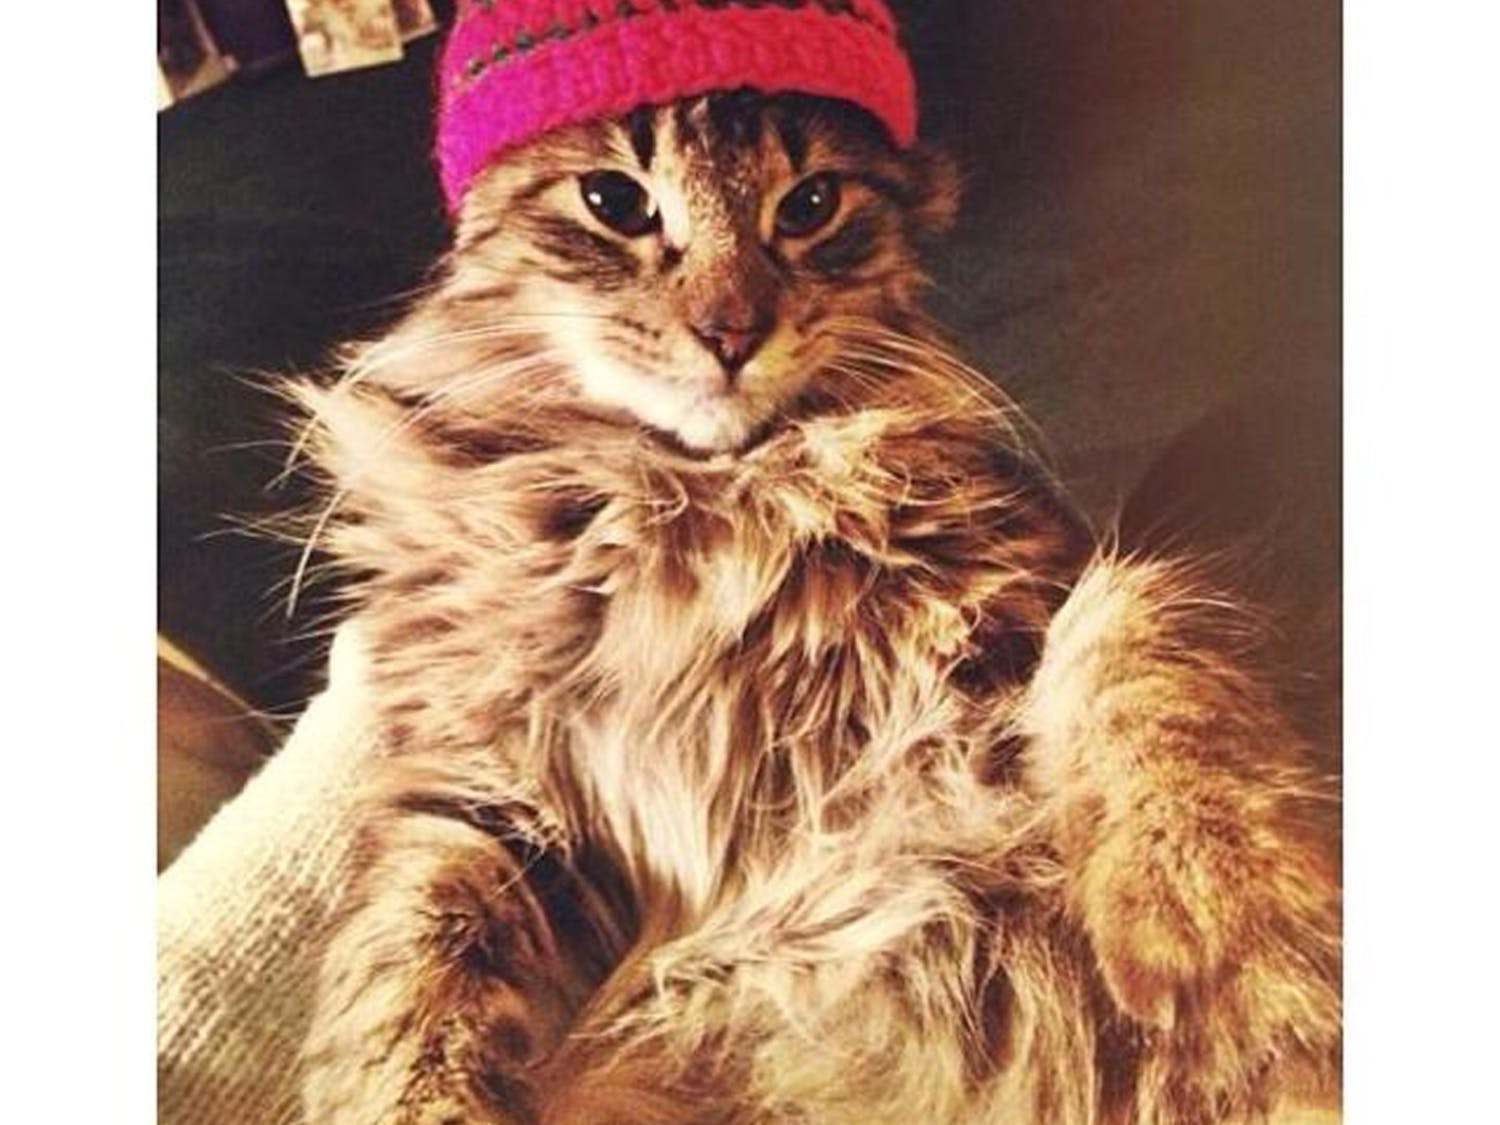 Tinder is a dating app that lets two people strike up a conversation after mutually finding each other attractive. Avenue writer Alexa Volland's kitten Santa Paws, pictured above, had 222 matches in the span of two days.